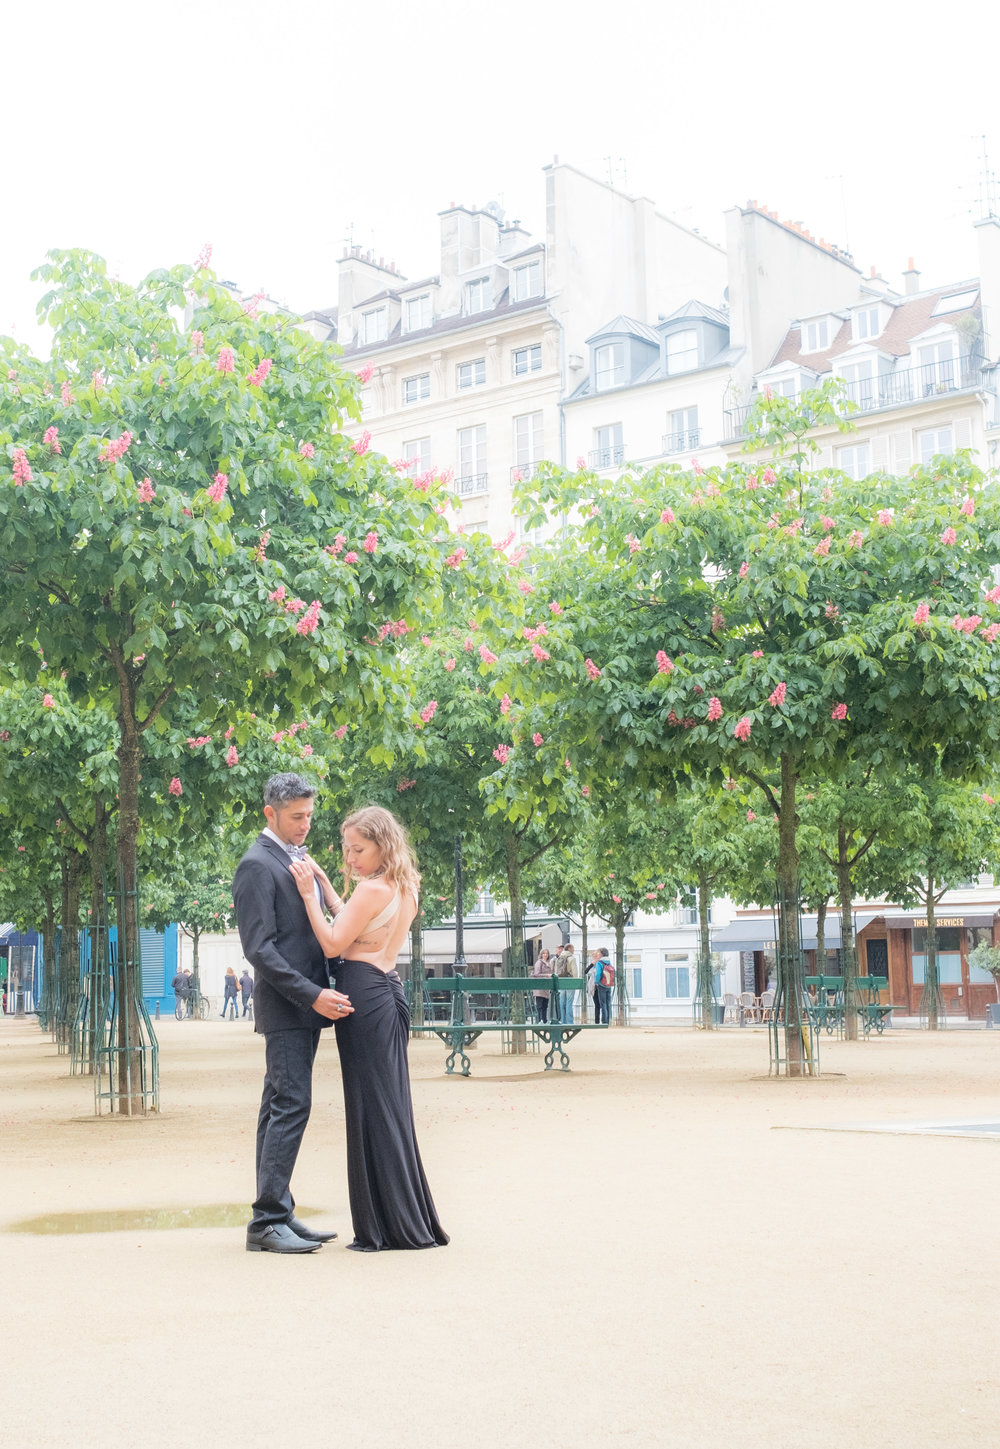 These pink trees are blooming in May at Place Dauphine, closer to Notre Dame